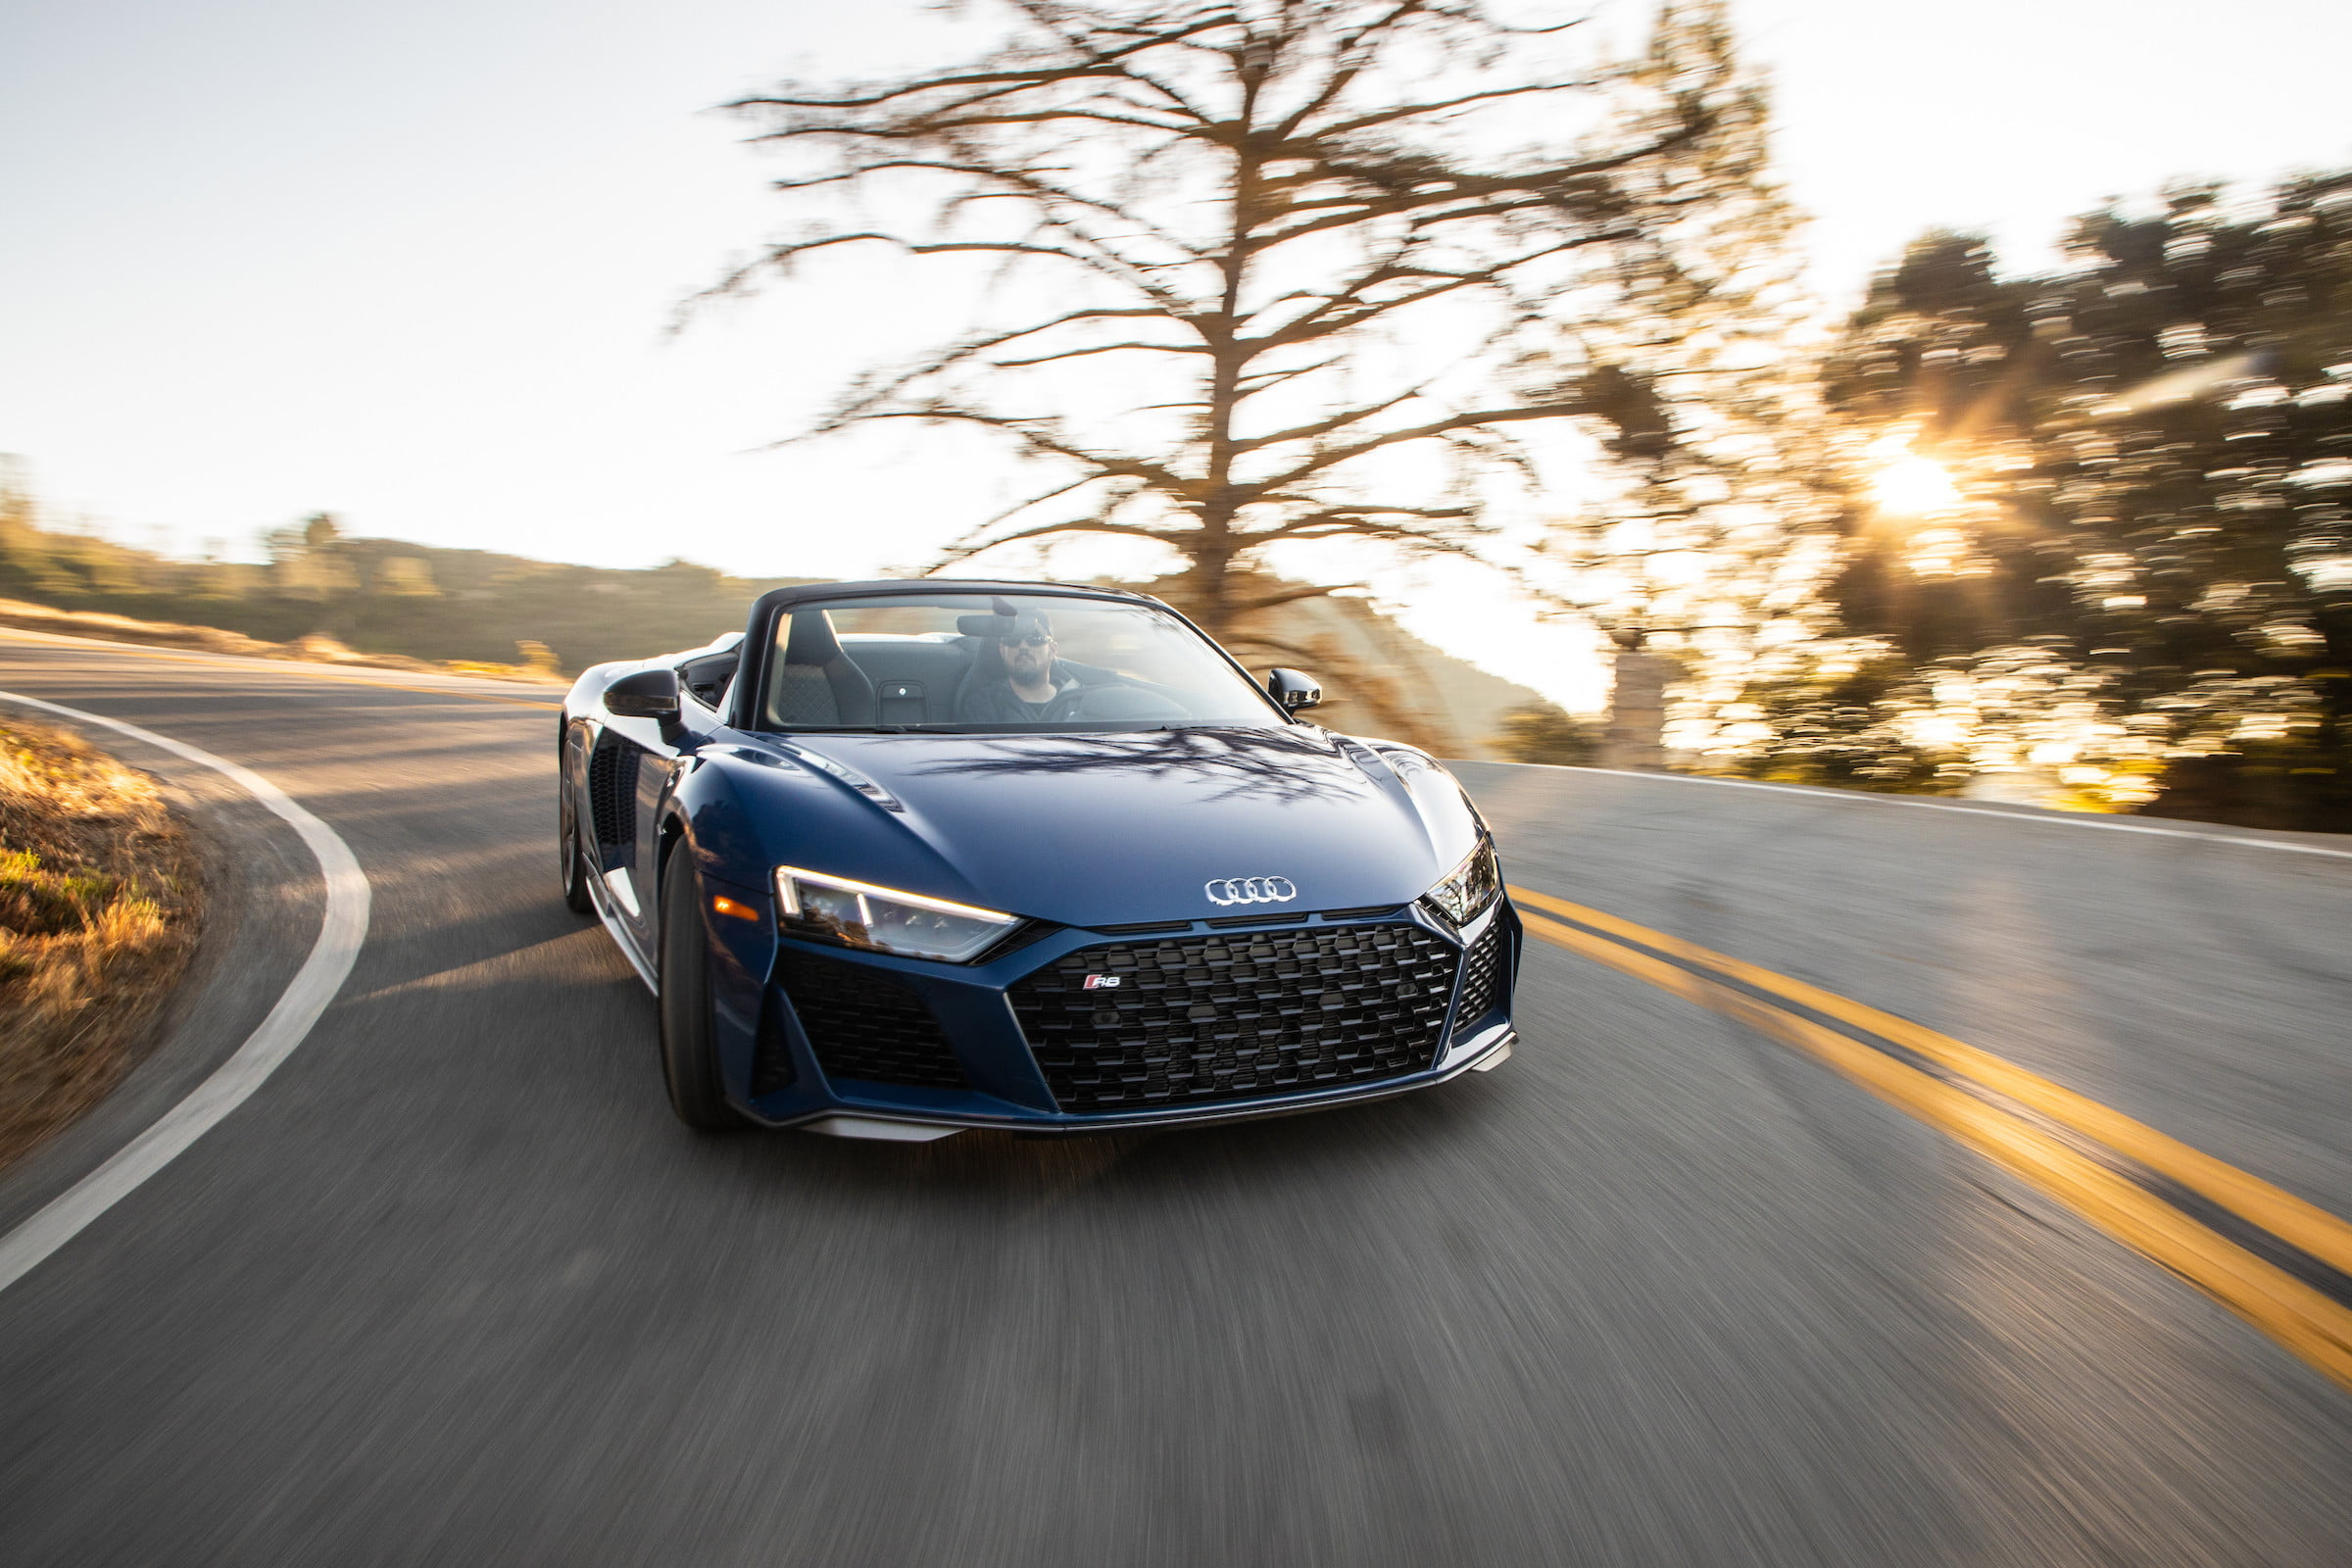 2020 Audi R8 Performance Spyder First Drive: Super Grocery-getter